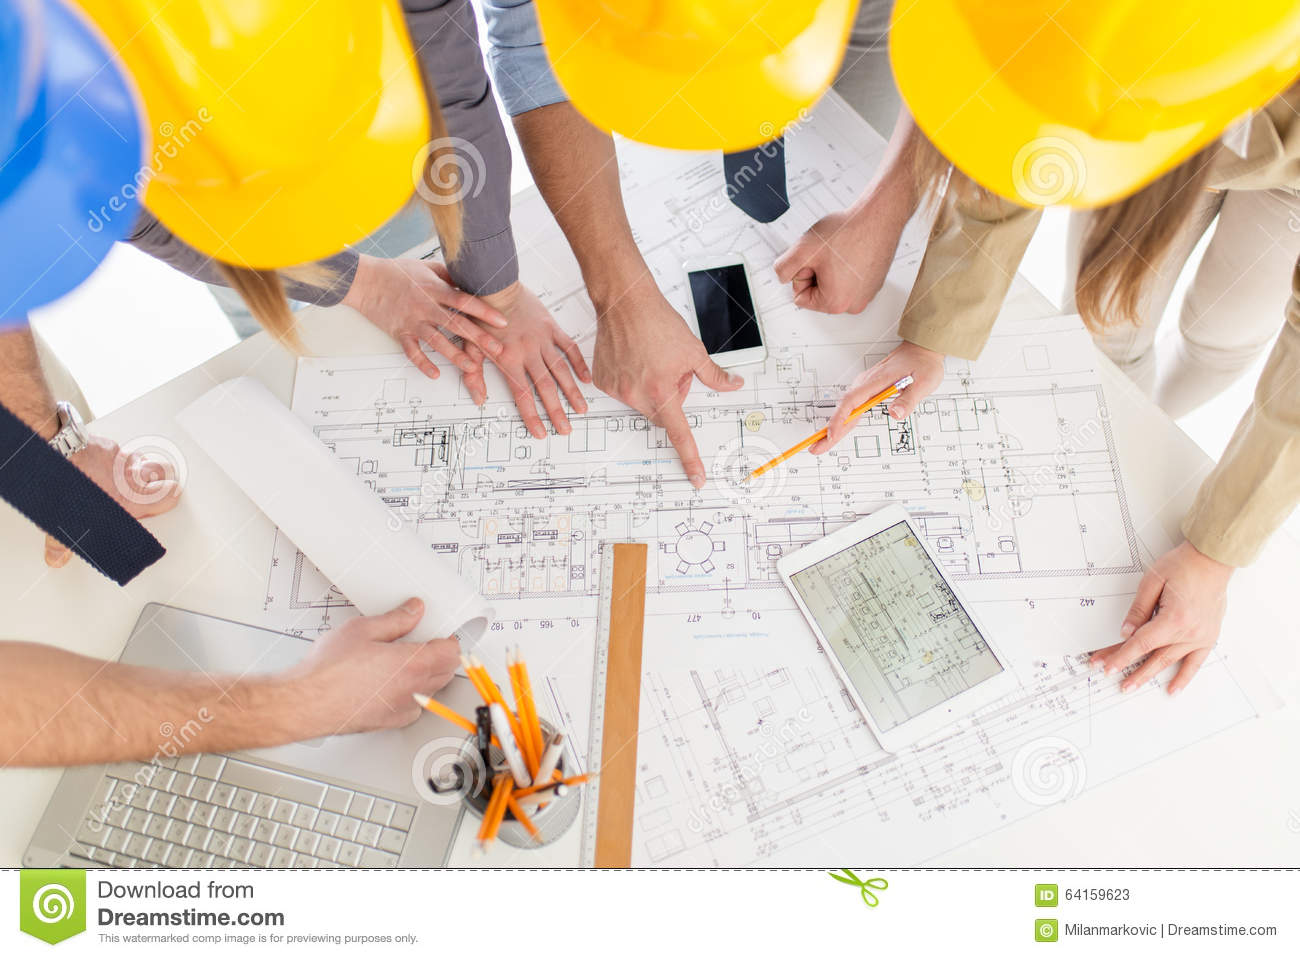 Successful Architects successful architects team stock photo - image: 64159623